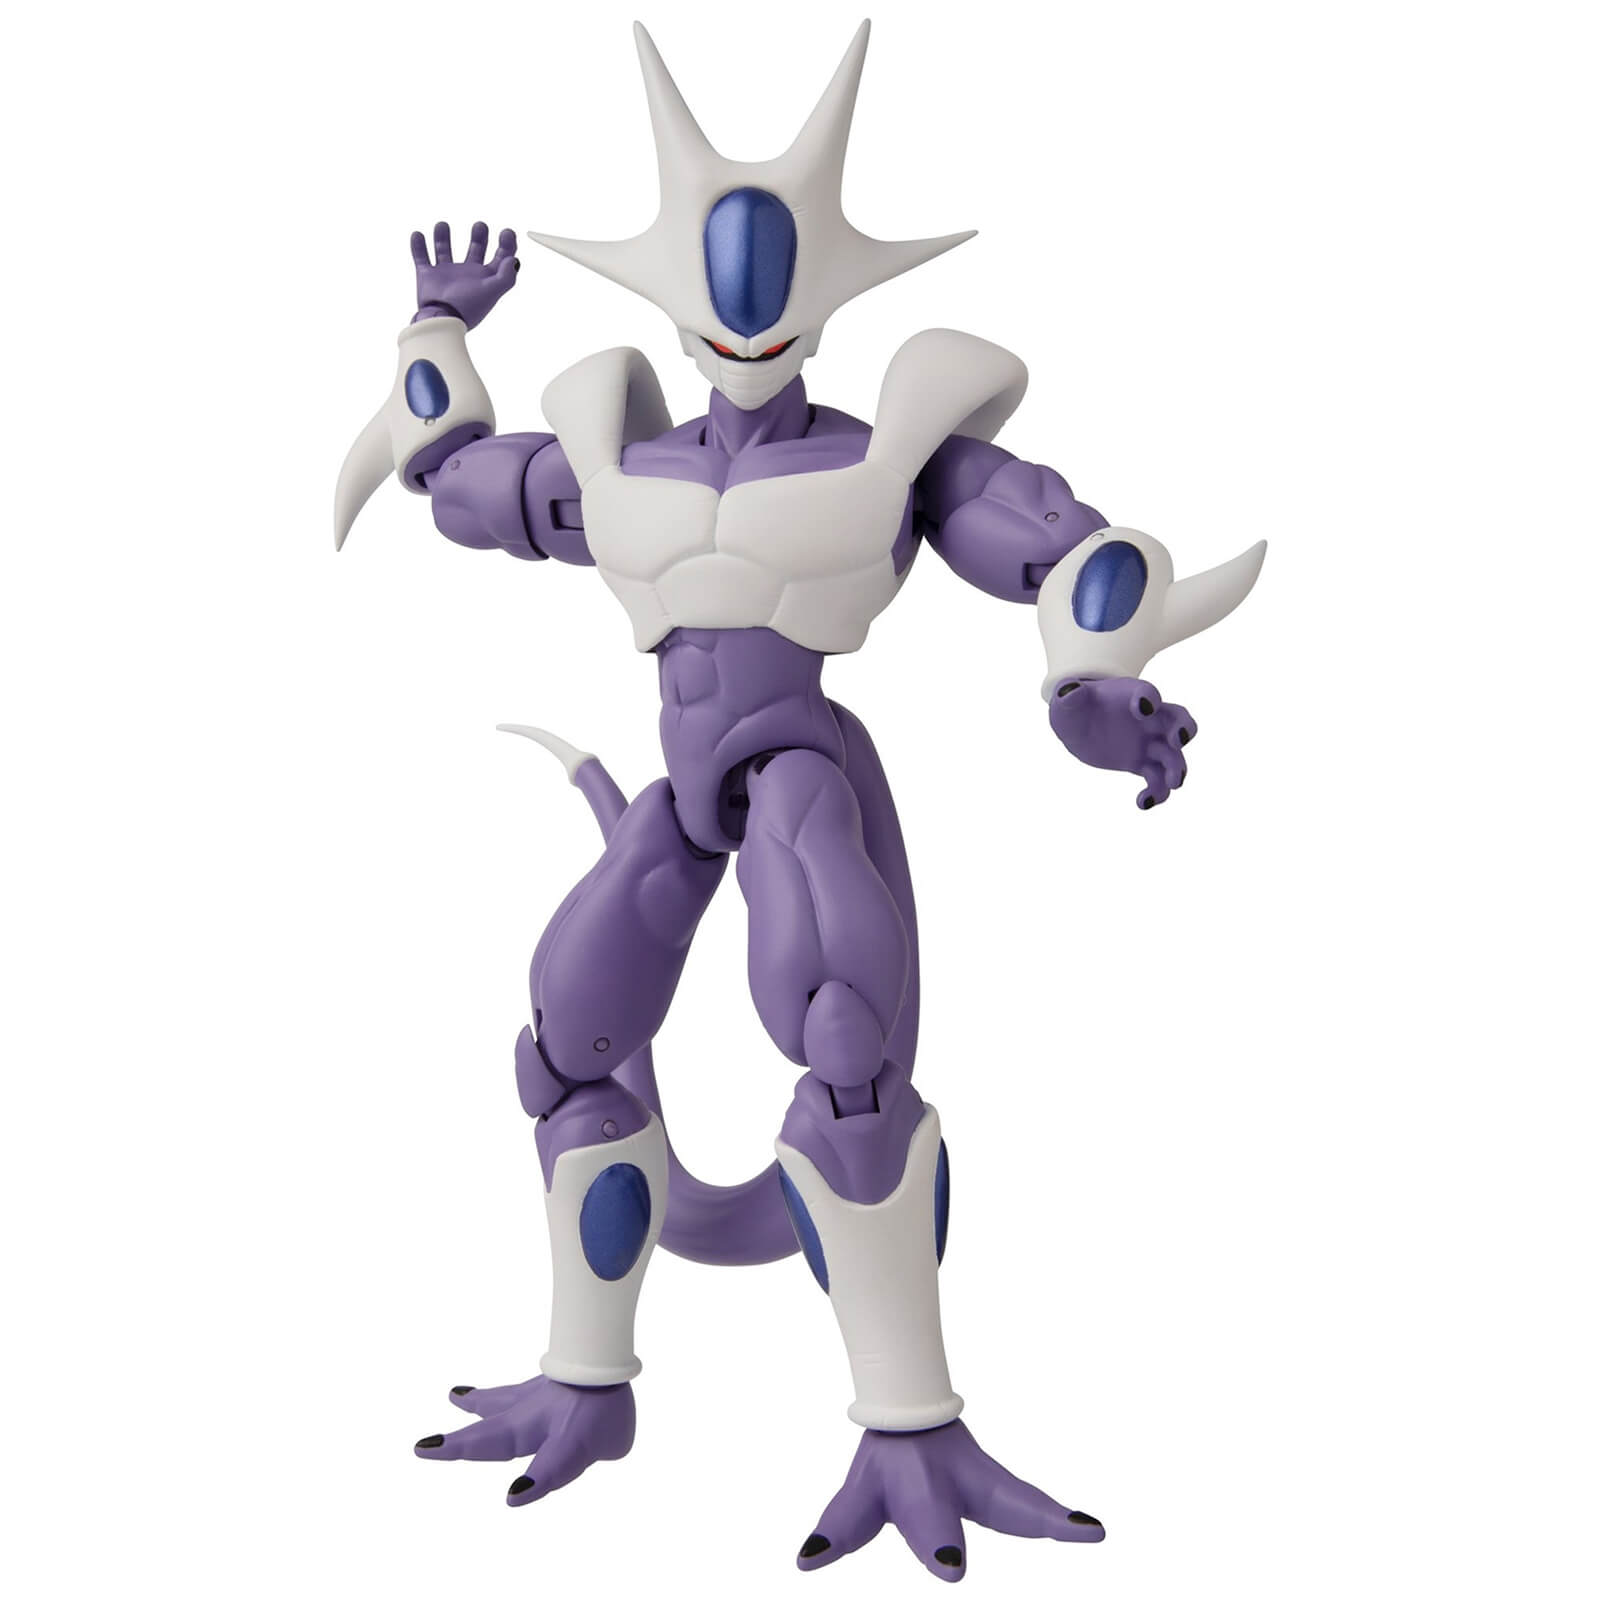 Image of Bandai Dragon Stars DBZ Cooler Final Form Action Figure